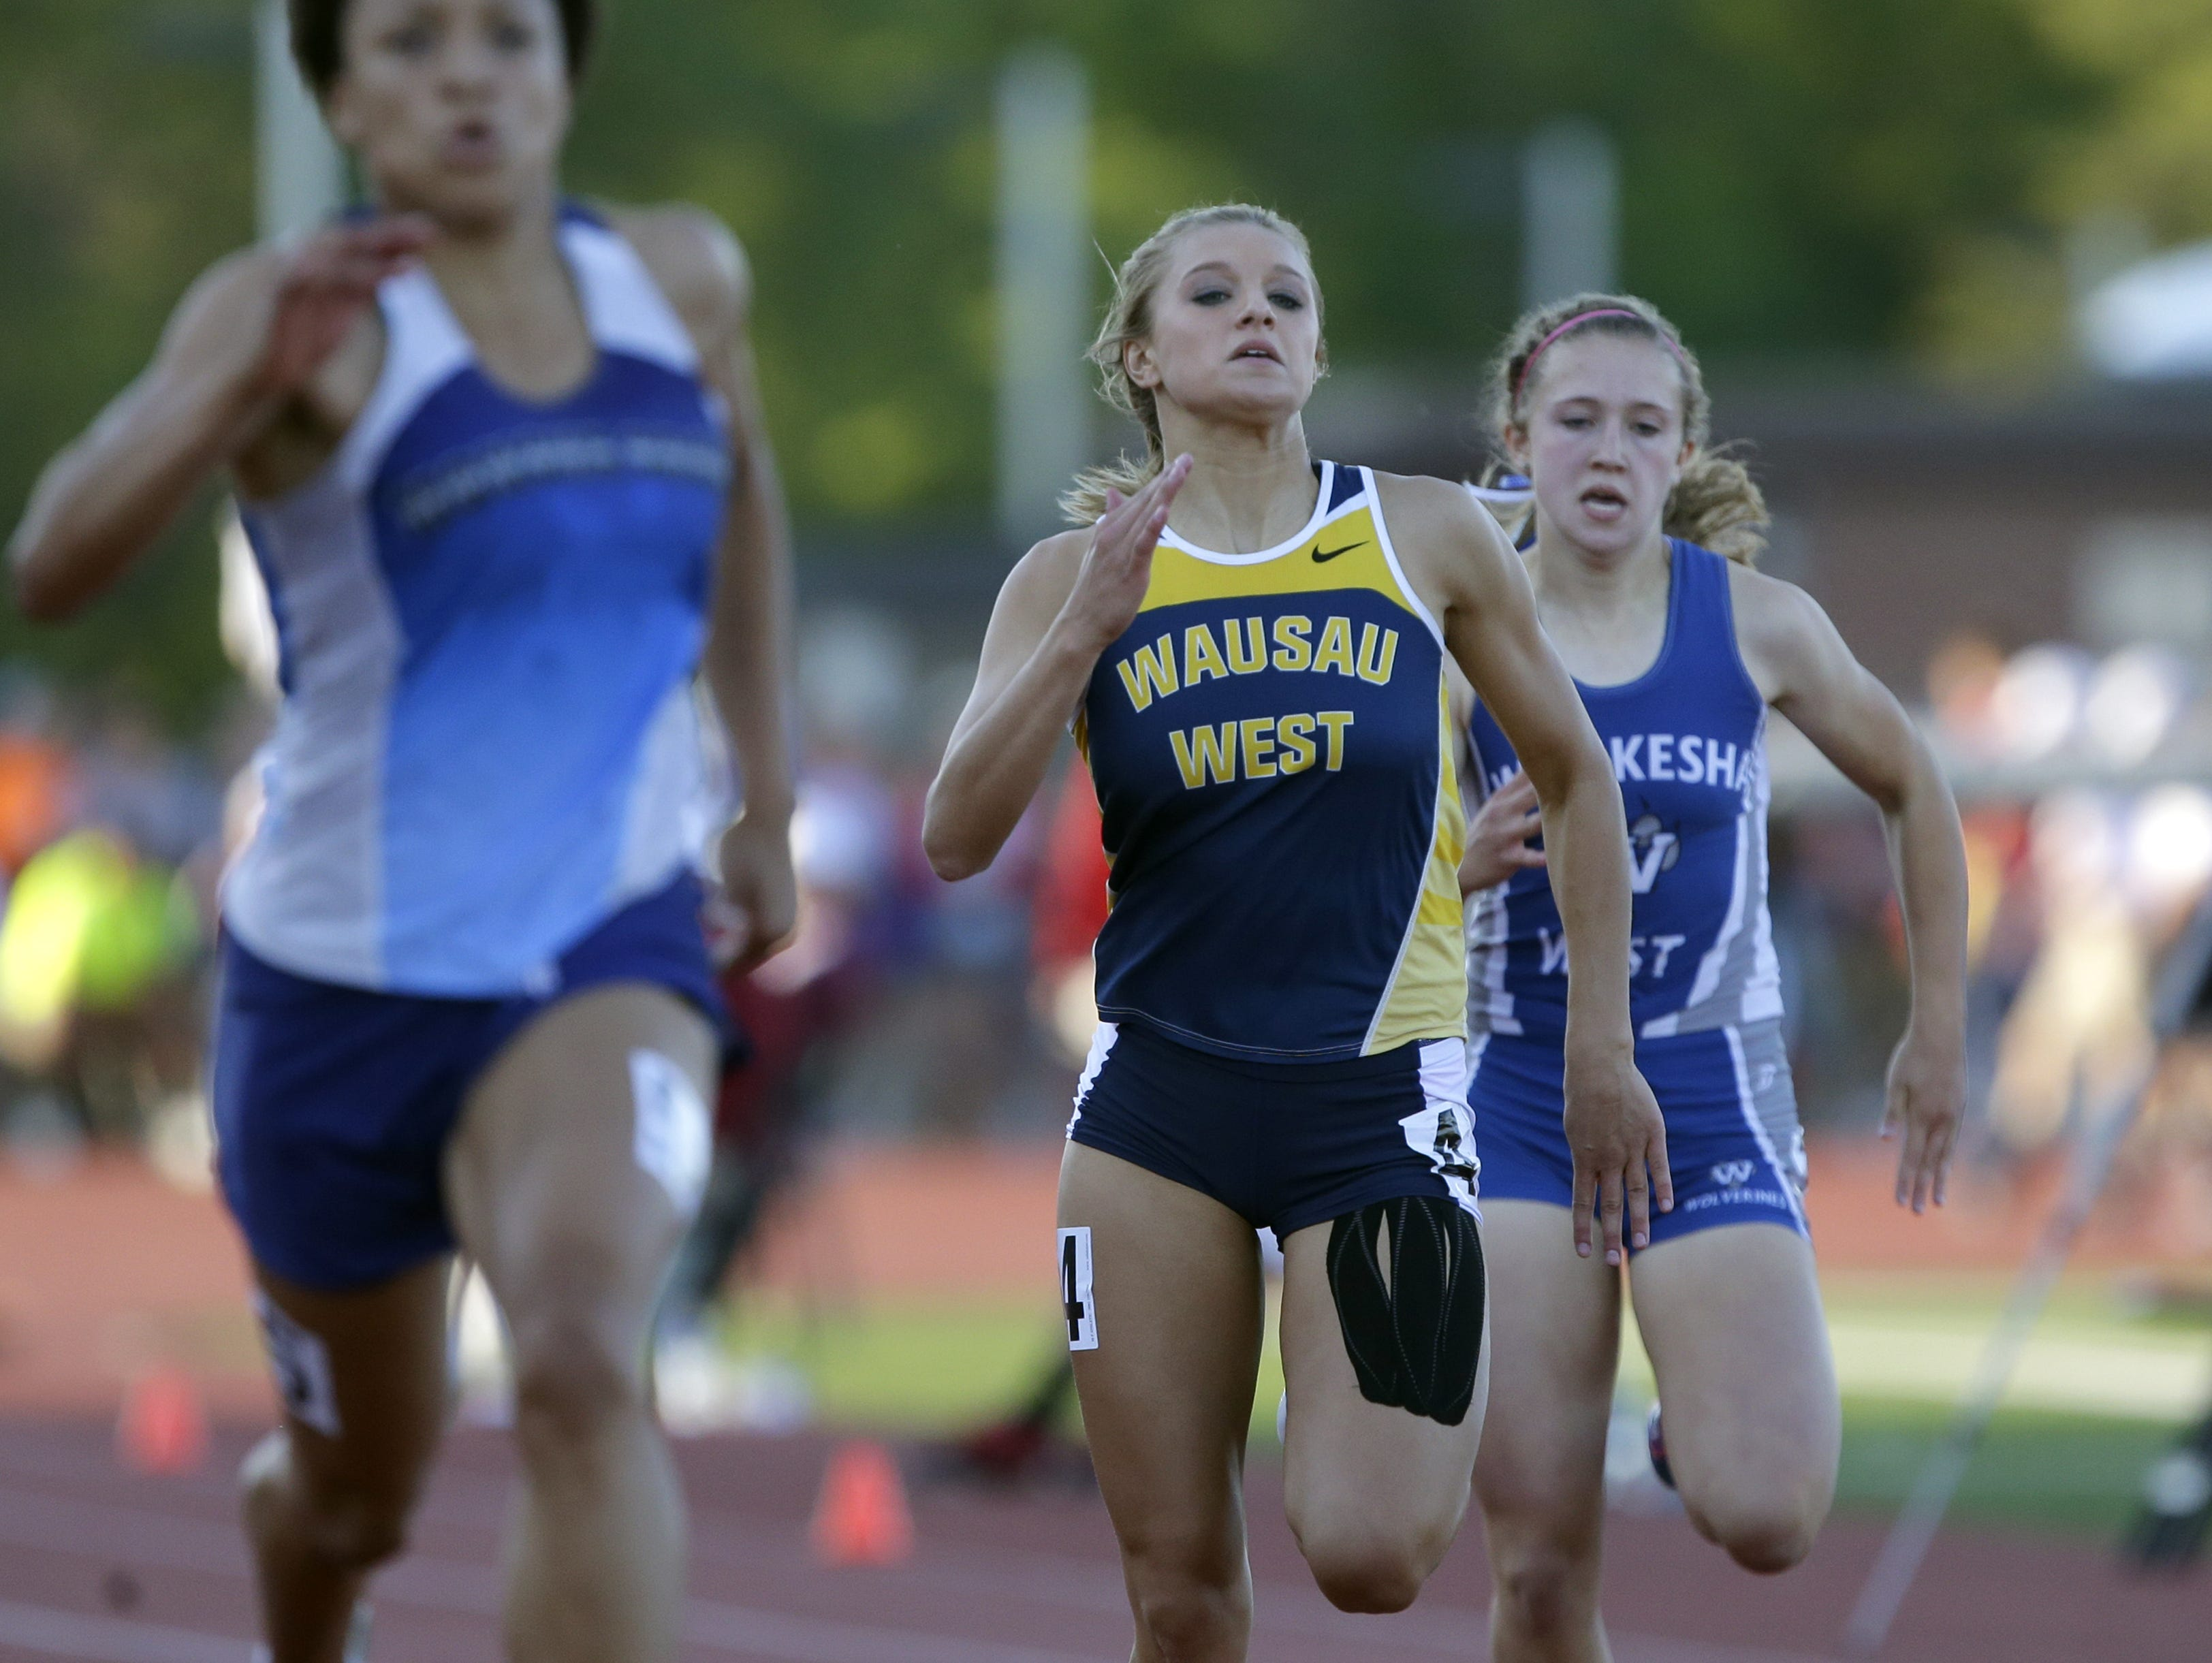 Wausau West's Alyssa Faucett will continue her track career at the University of Minnesota